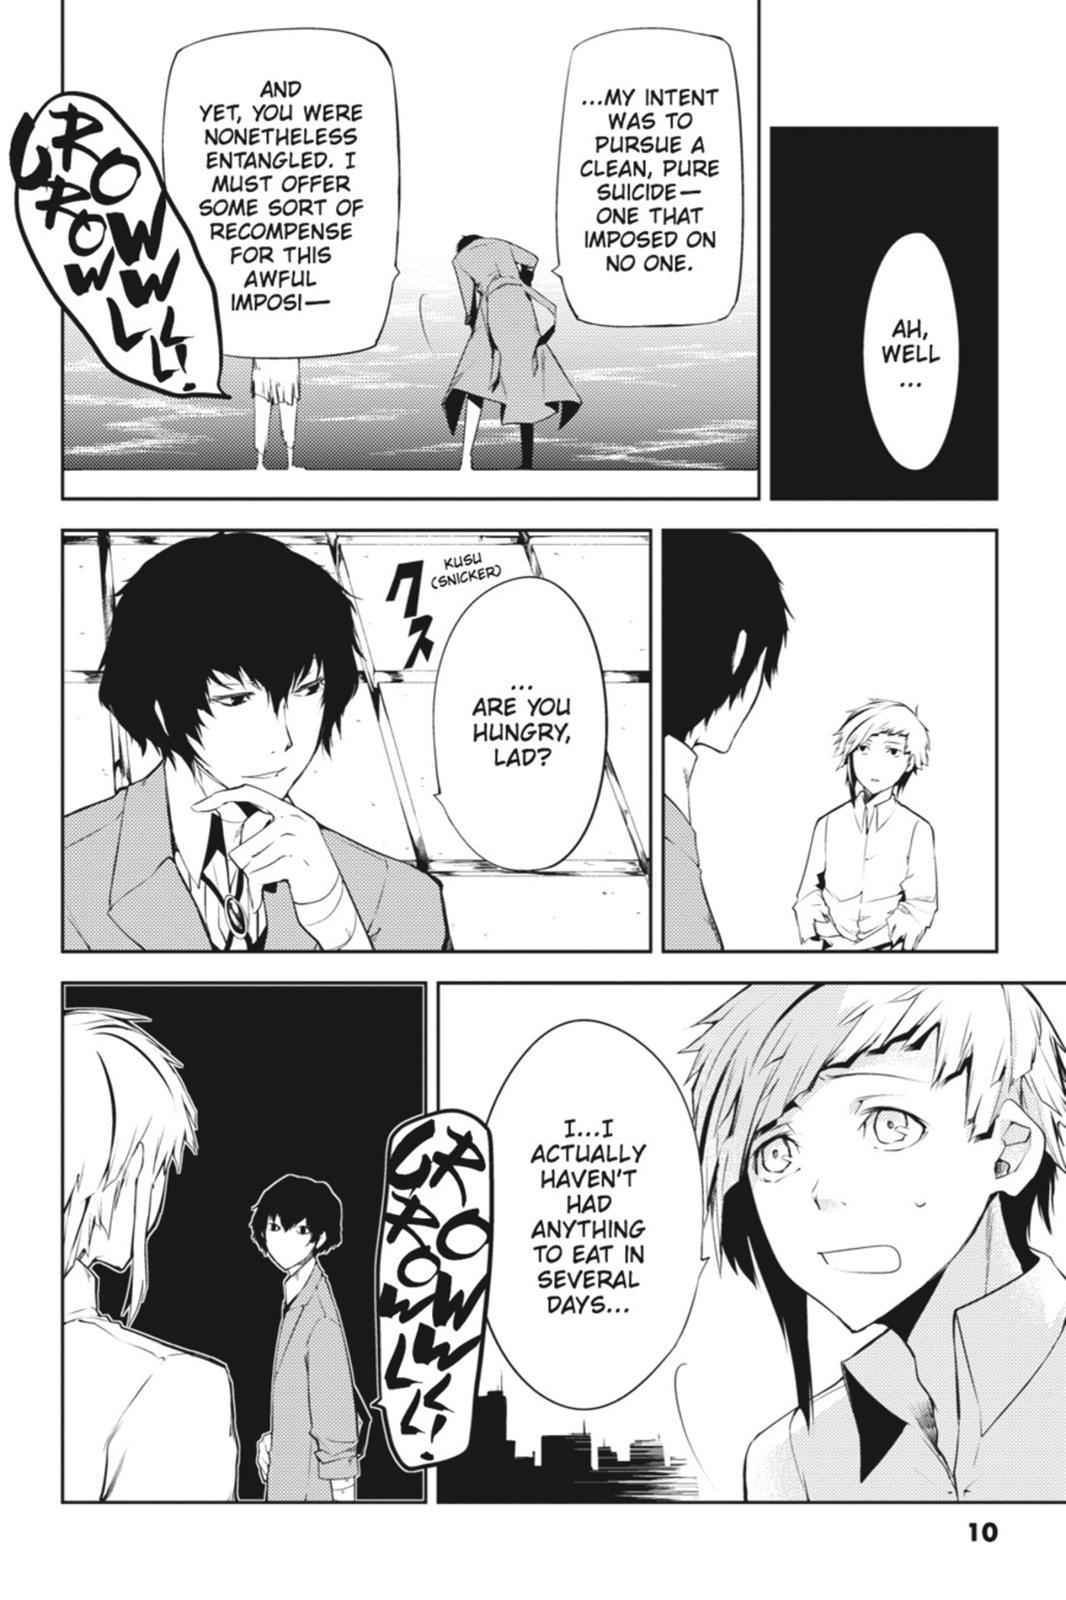 Bungou Stray Dogs Chapter 1 Page 10